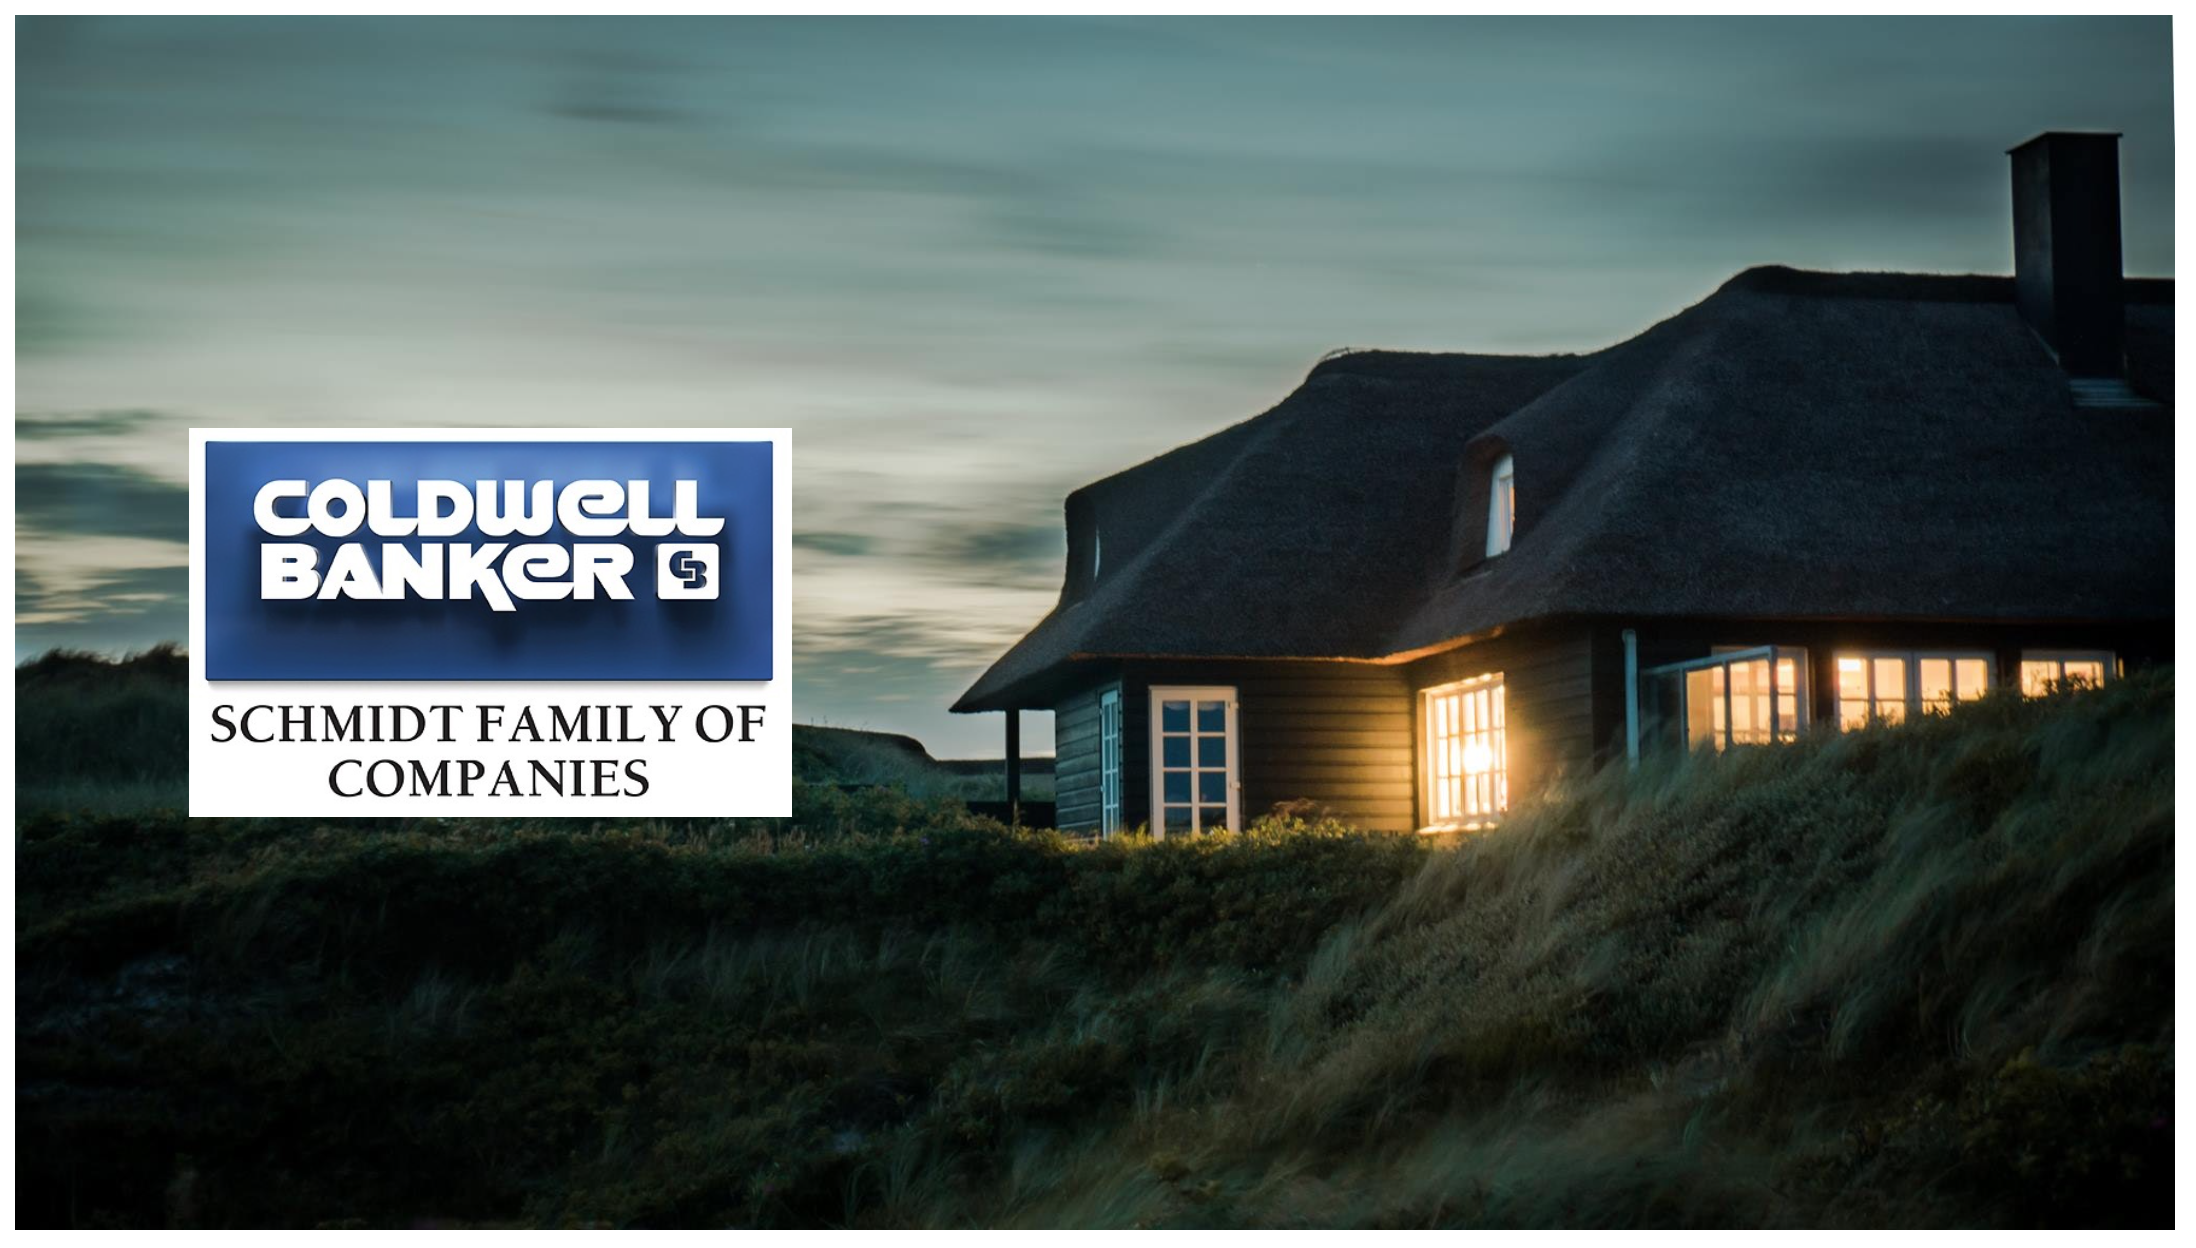 servant leadership with Coldwell Banker